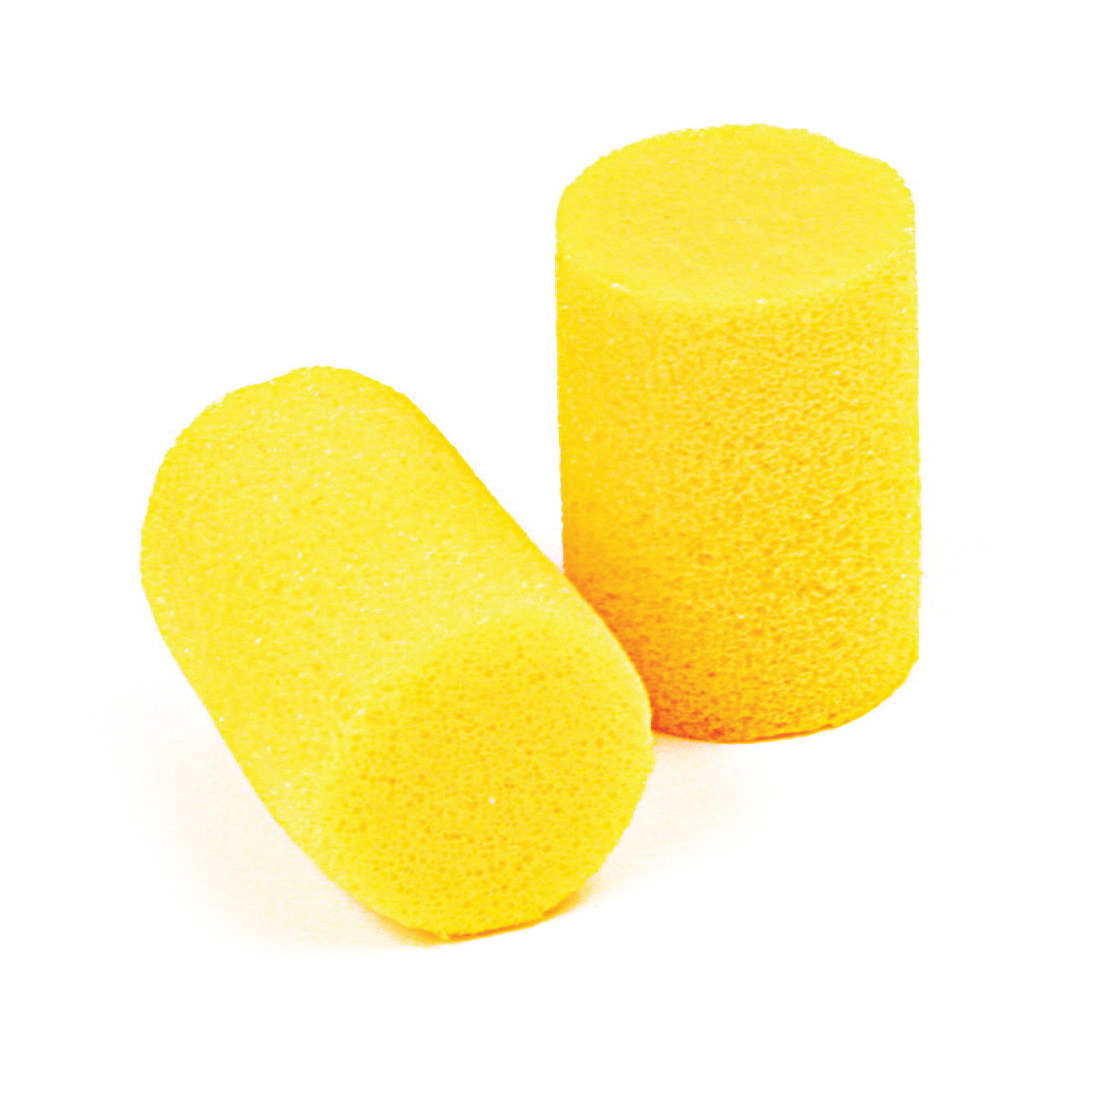 3M™ E-A-R™ Classic™ 080529-12002 Earplugs, 29 dB Noise Reduction, Cylindrical Shape, CSA Class AL, Disposable, Uncorded Design